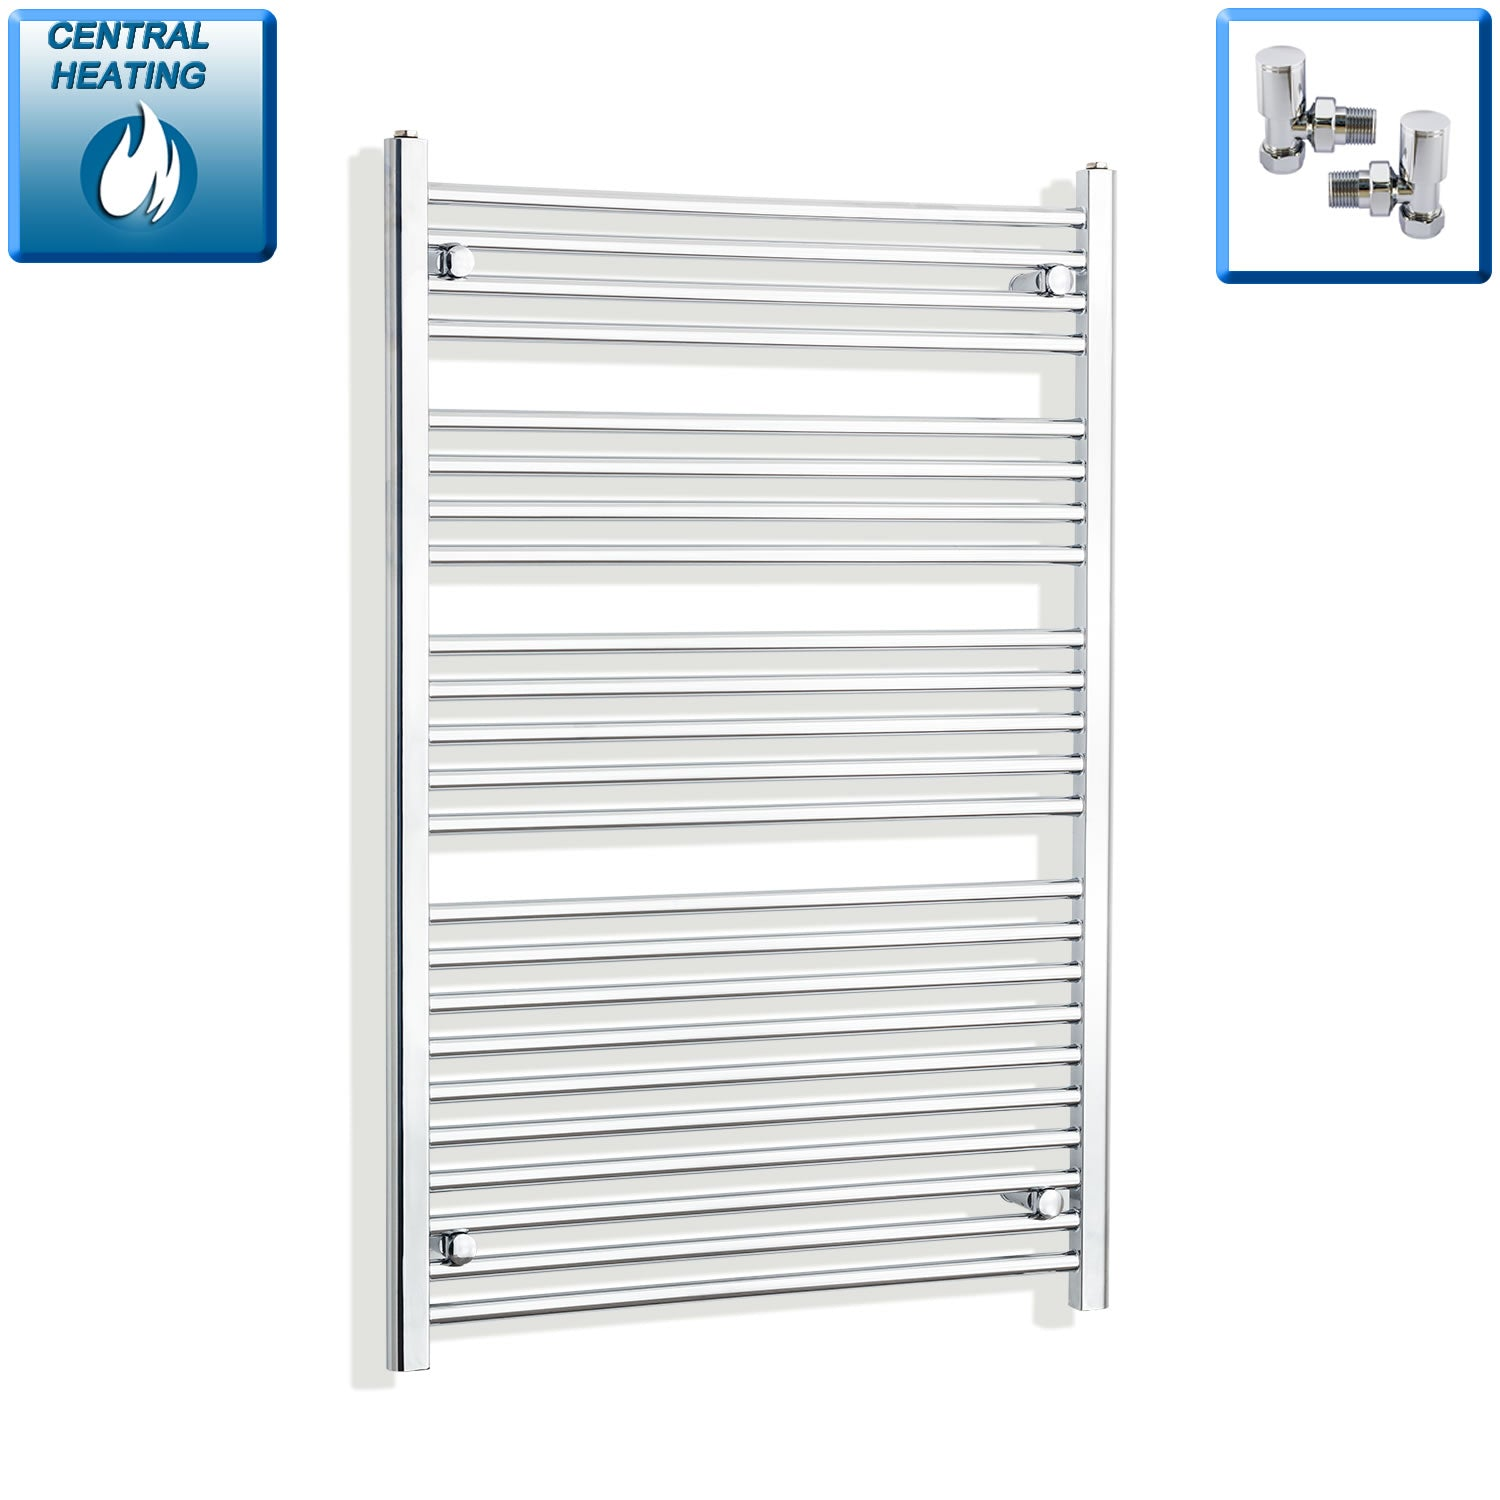 800mm Wide 1200mm High Chrome Towel Rail Radiator With Angled Valve